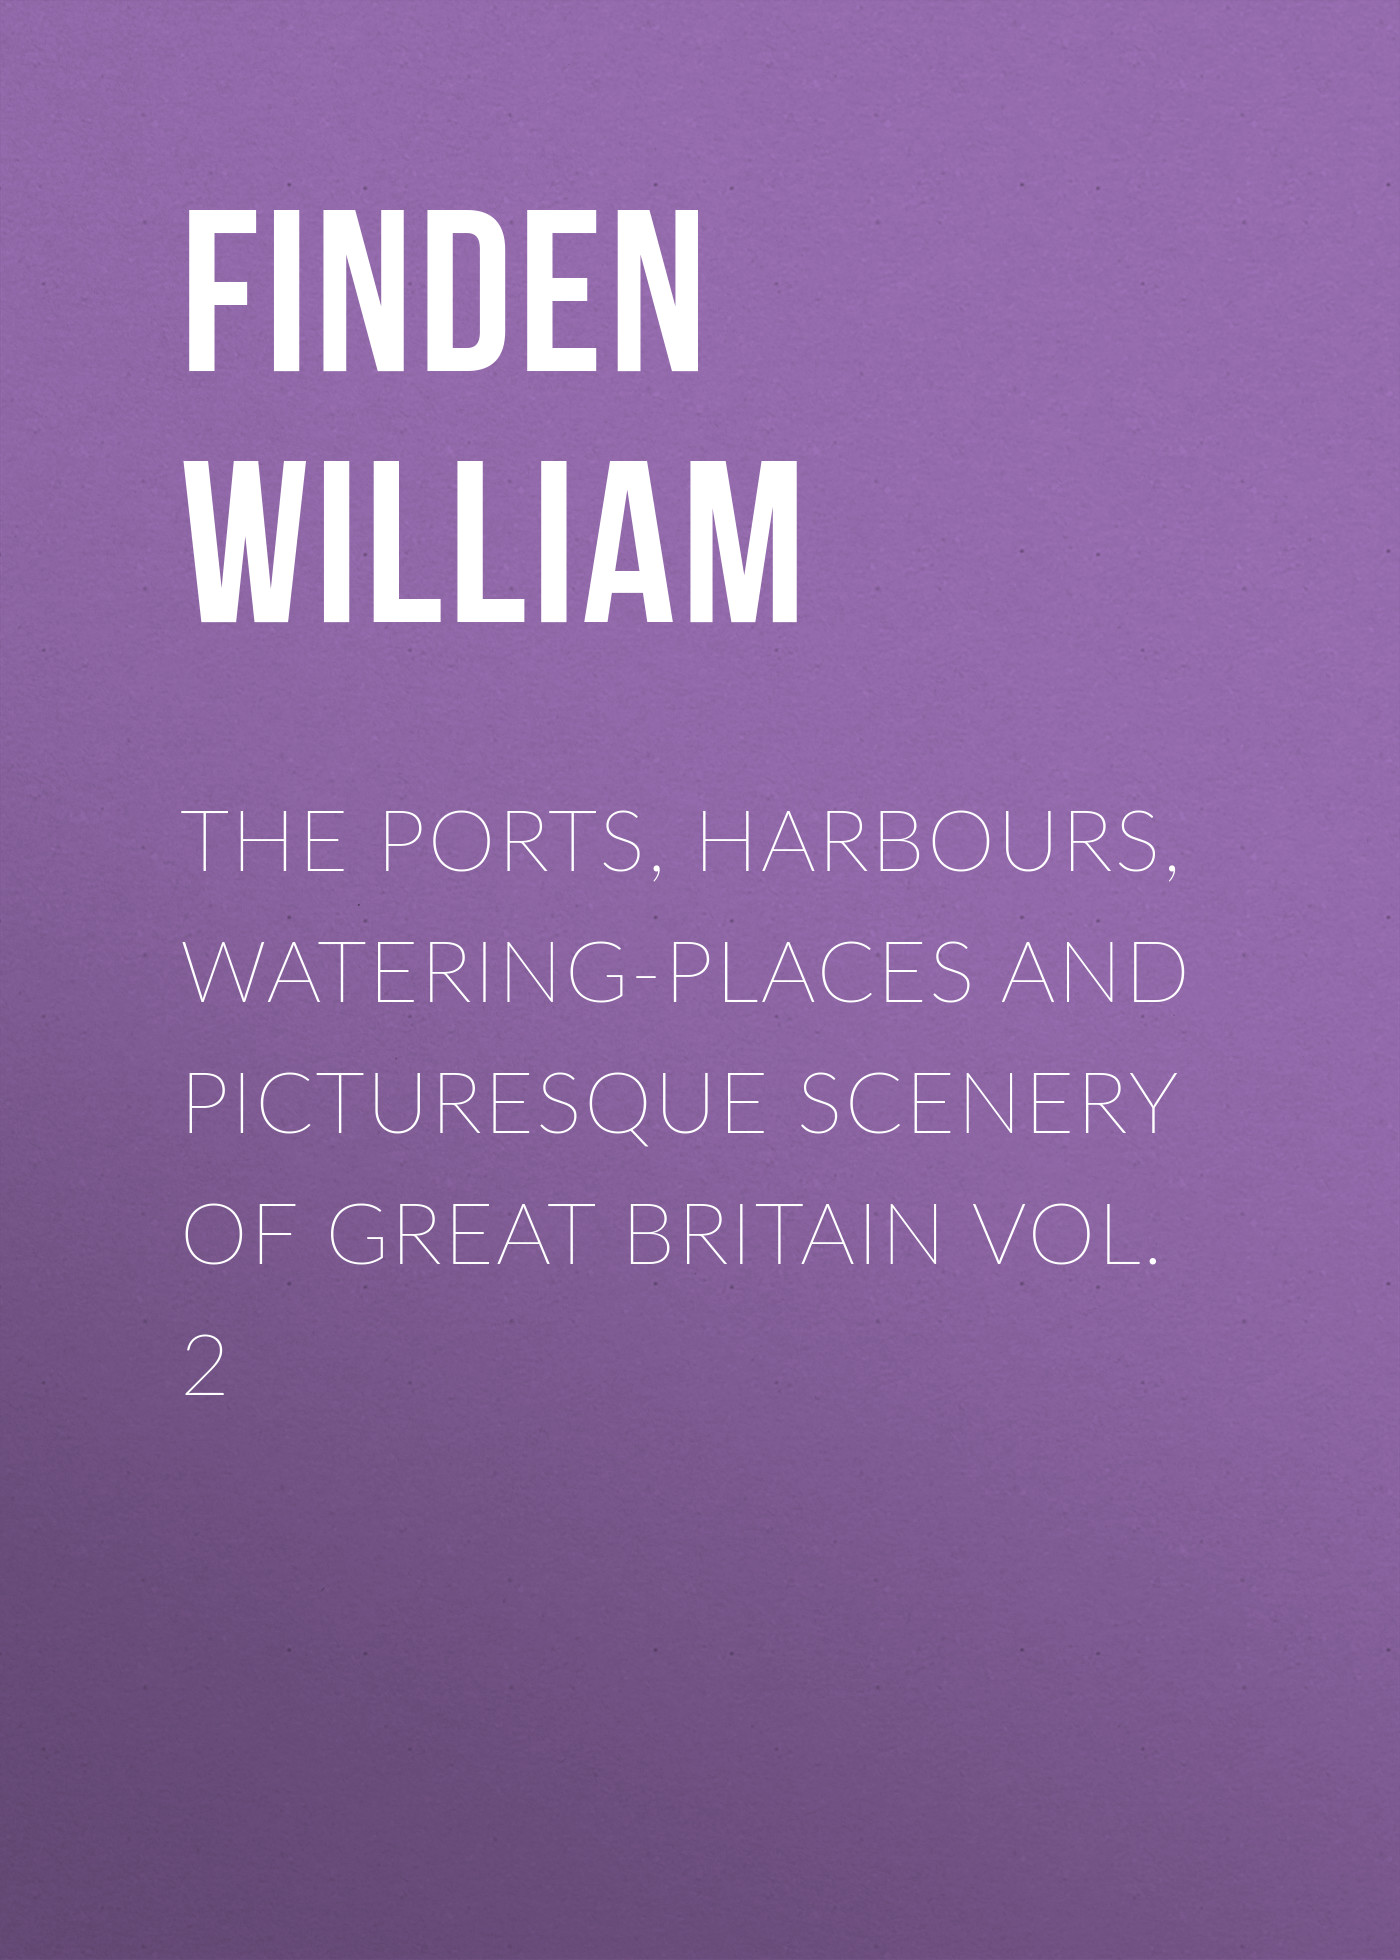 Finden William The Ports, Harbours, Watering-places and Picturesque Scenery of Great Britain Vol. 2 all the bright places